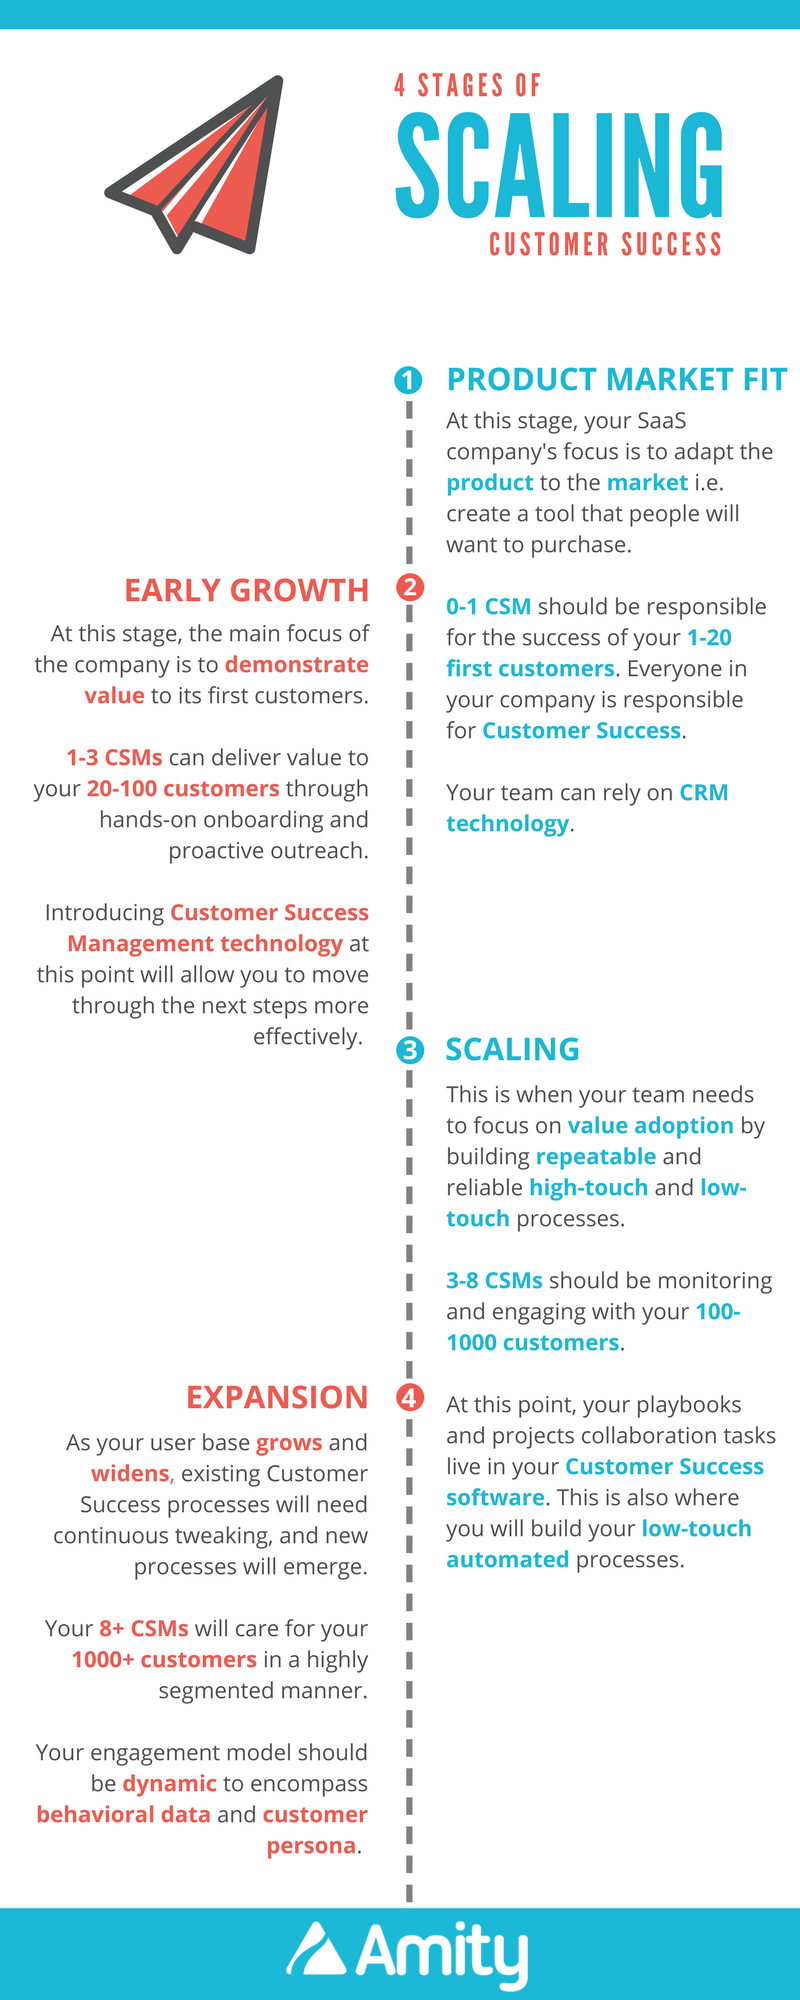 [Infographic] The 4 Stages of Scaling Customer Success